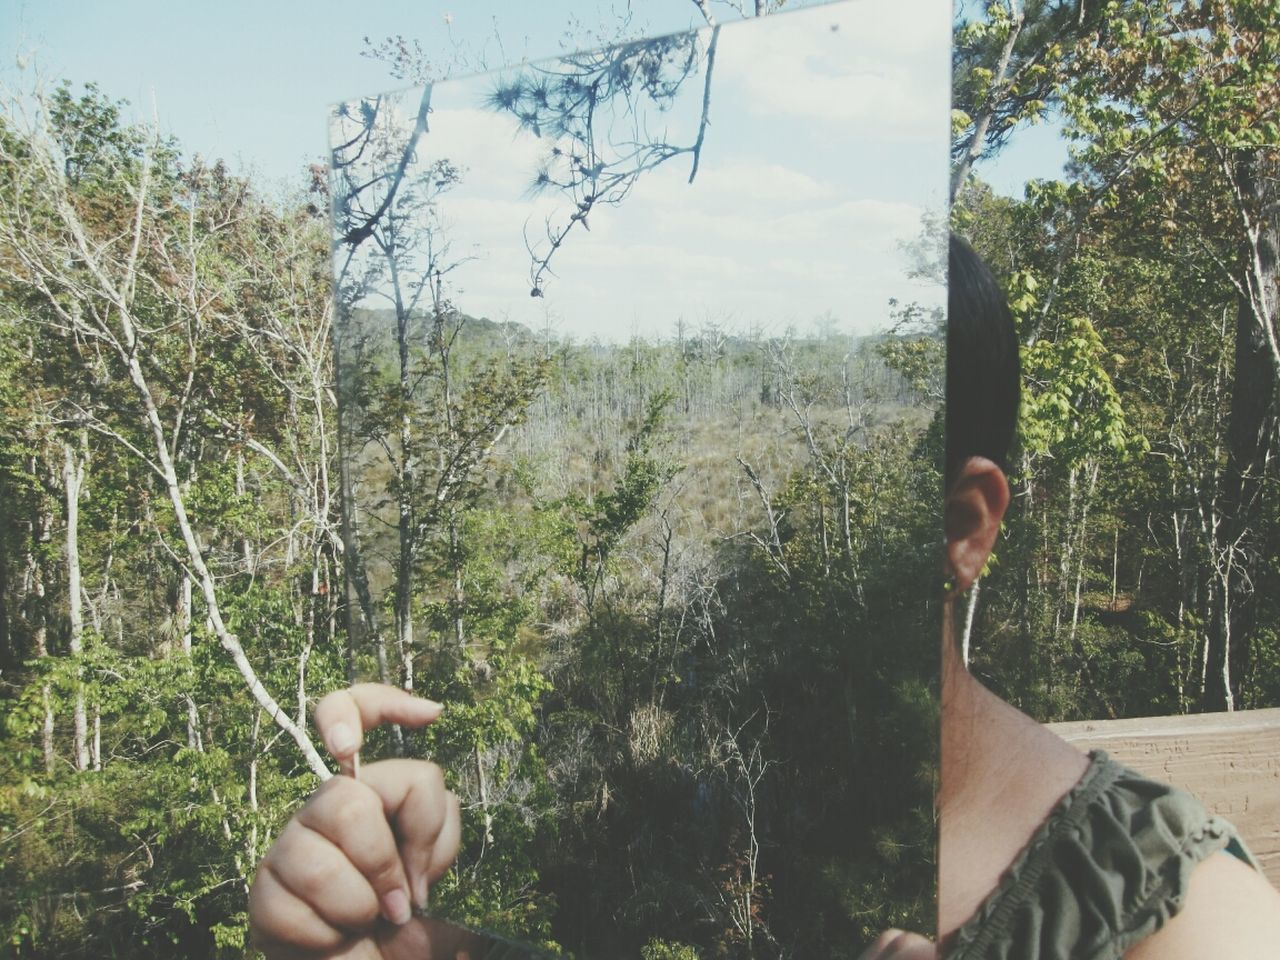 human hand, tree, human body part, real people, human finger, one person, gesturing, holding, day, nature, outdoors, forest, men, sky, beauty in nature, close-up, people